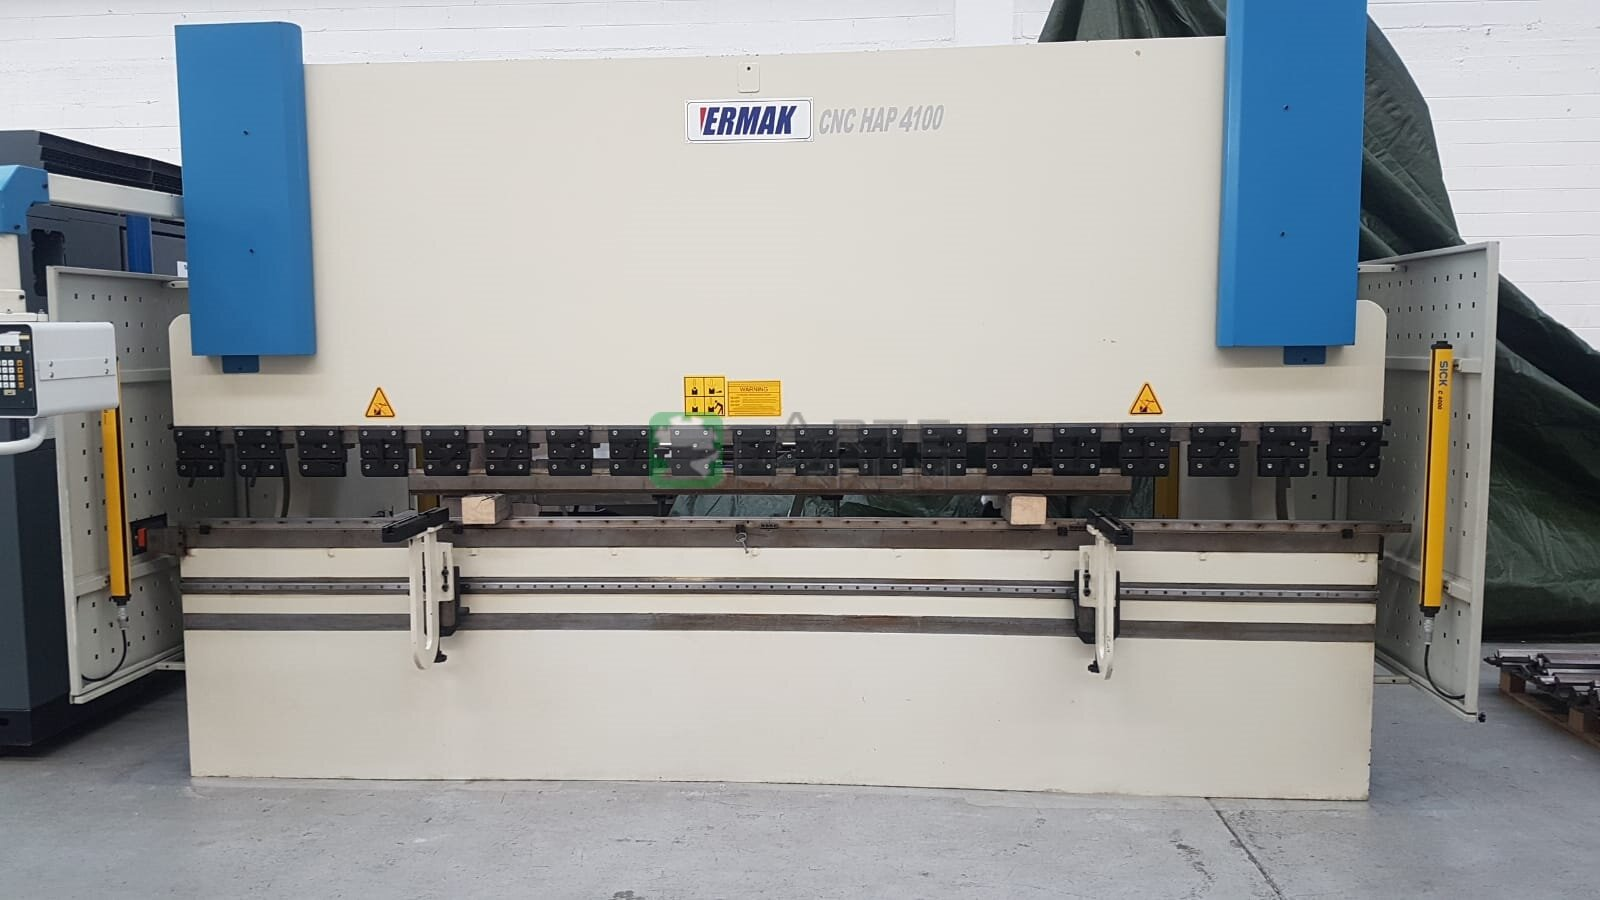 /en/ermak-cnc-hap-4100x120ton-press-brake-detail